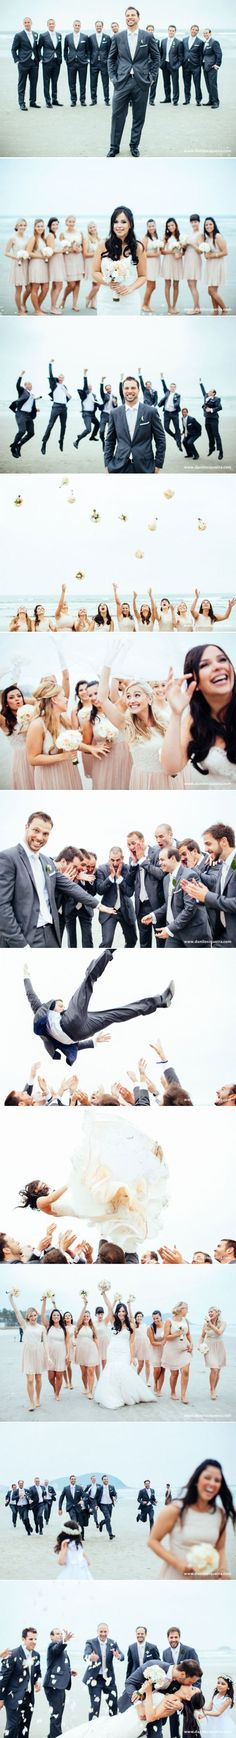 Wedding photography poses bridal party groomsmen group shots new ideas Wedding Pictures Beach, Wedding Picture Poses, Party Pictures, Wedding Photography Poses, Wedding Poses, Wedding Beach, Photography Styles, Photographer Wedding, Portrait Photography